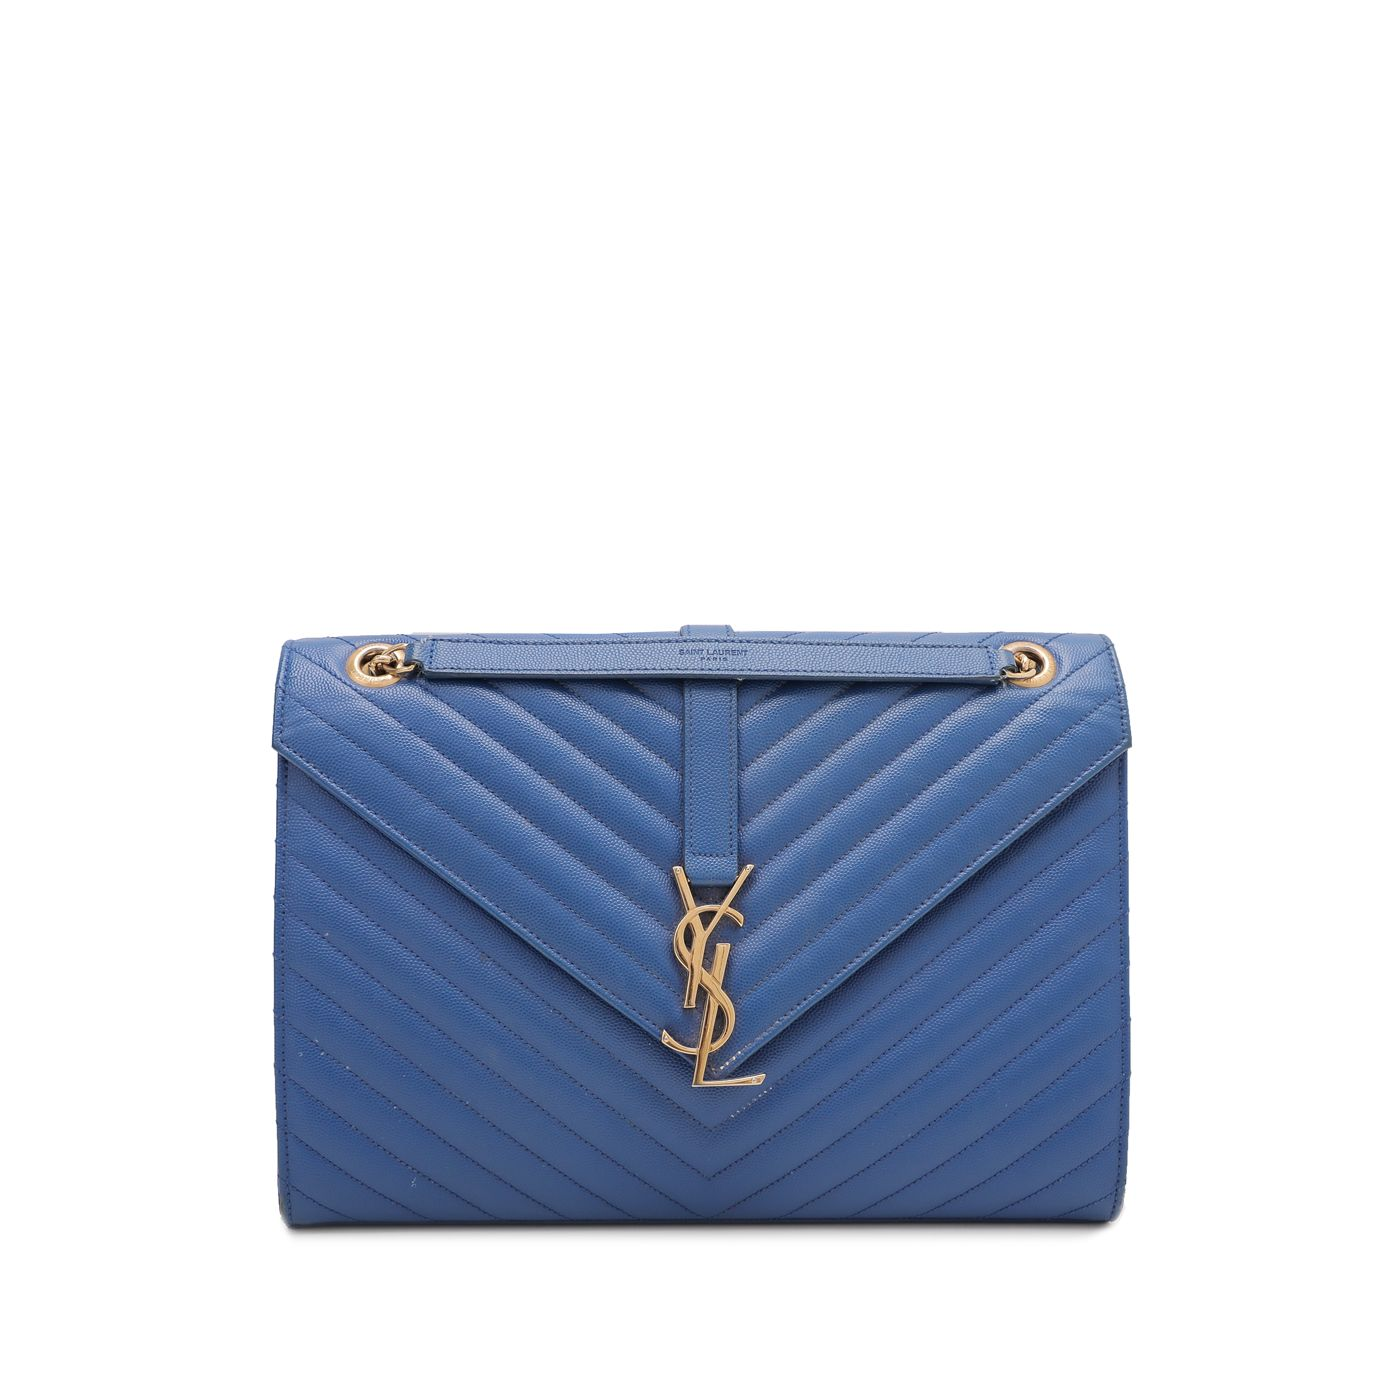 YSL Blue Monogram Satchel Bag